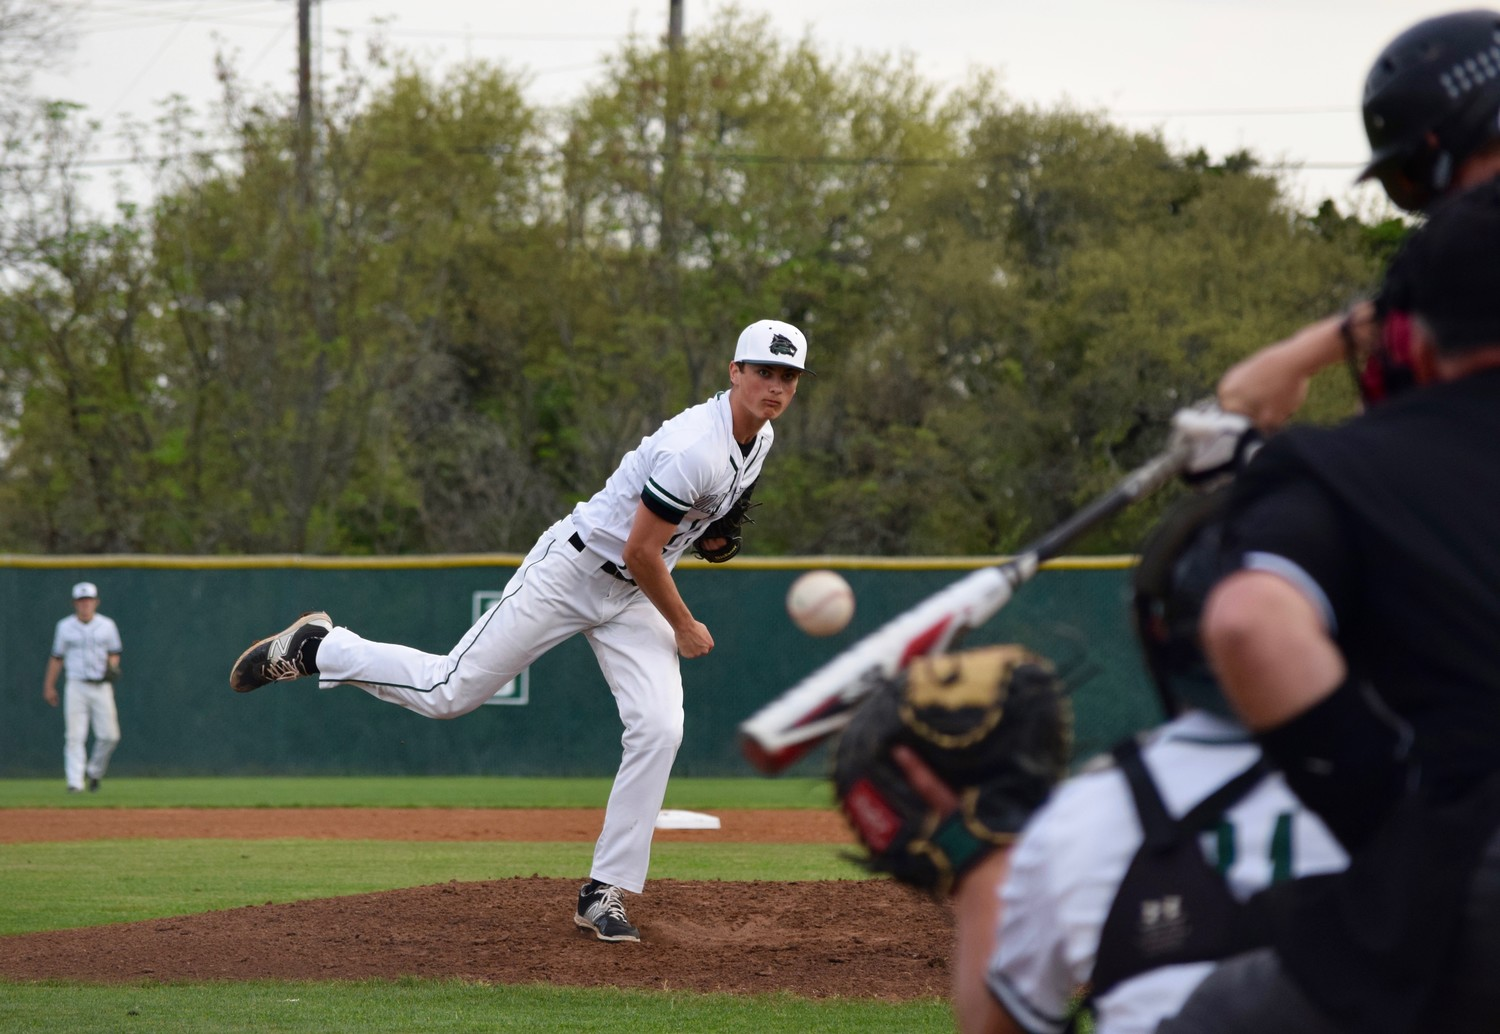 Hutson McGaughan threw five strikeouts in five innings, but Cedar Park lost to Rouse 4-0 on Friday night.